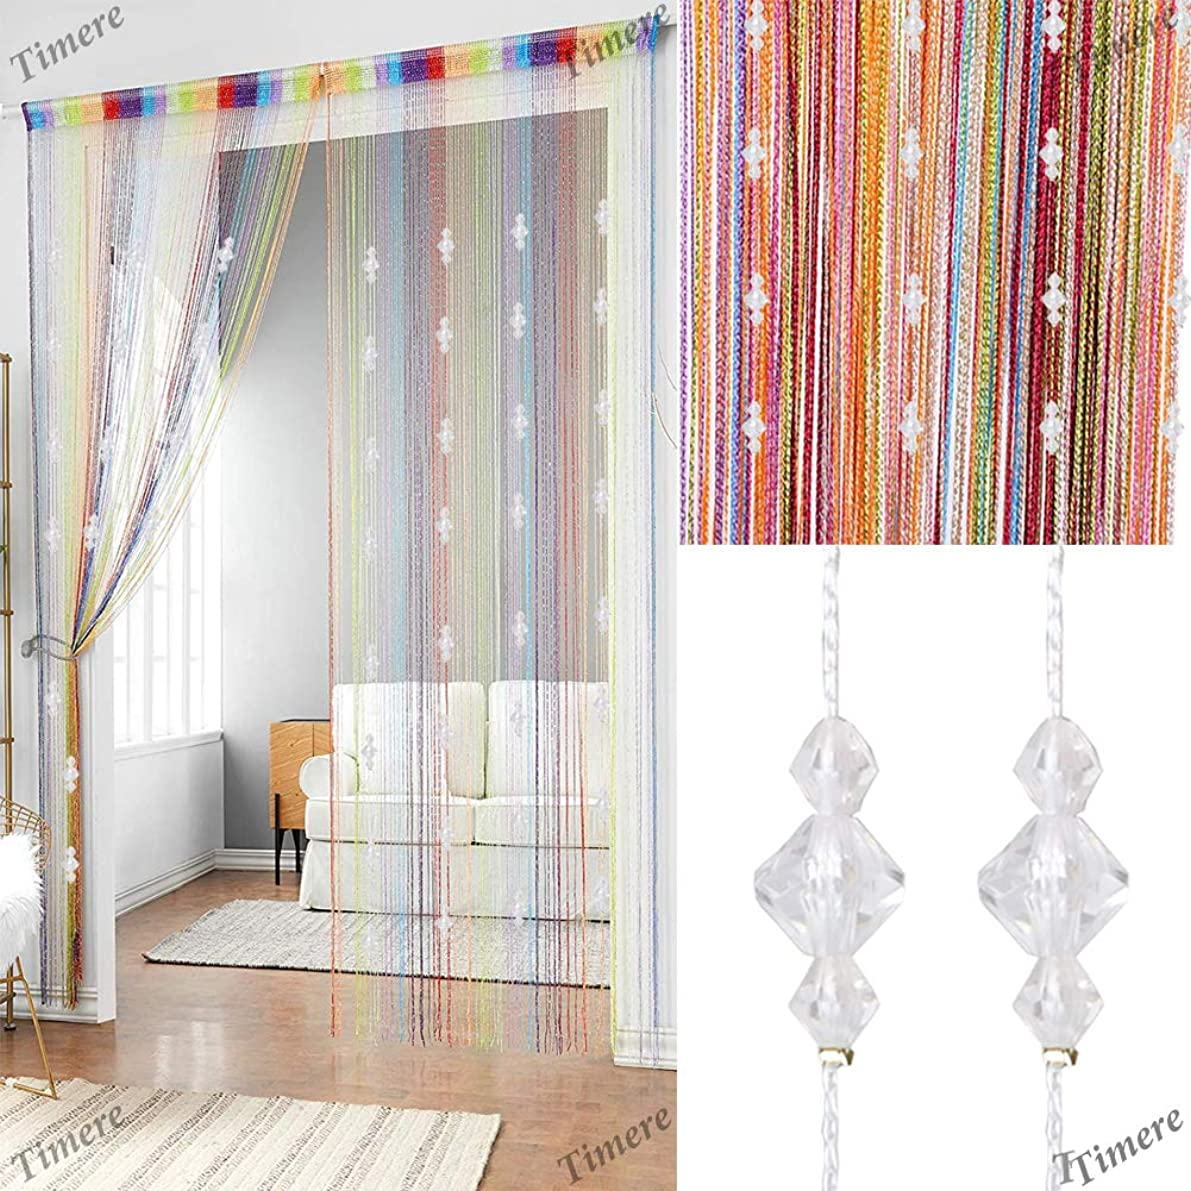 Timere Crystal Beaded Curtain Tassel Curtain - Partition Door Curtain Beaded String Curtain Door Screen Panel Home Decor Divider Crystal Tassel Screen 90x200cm (Rainbow#)